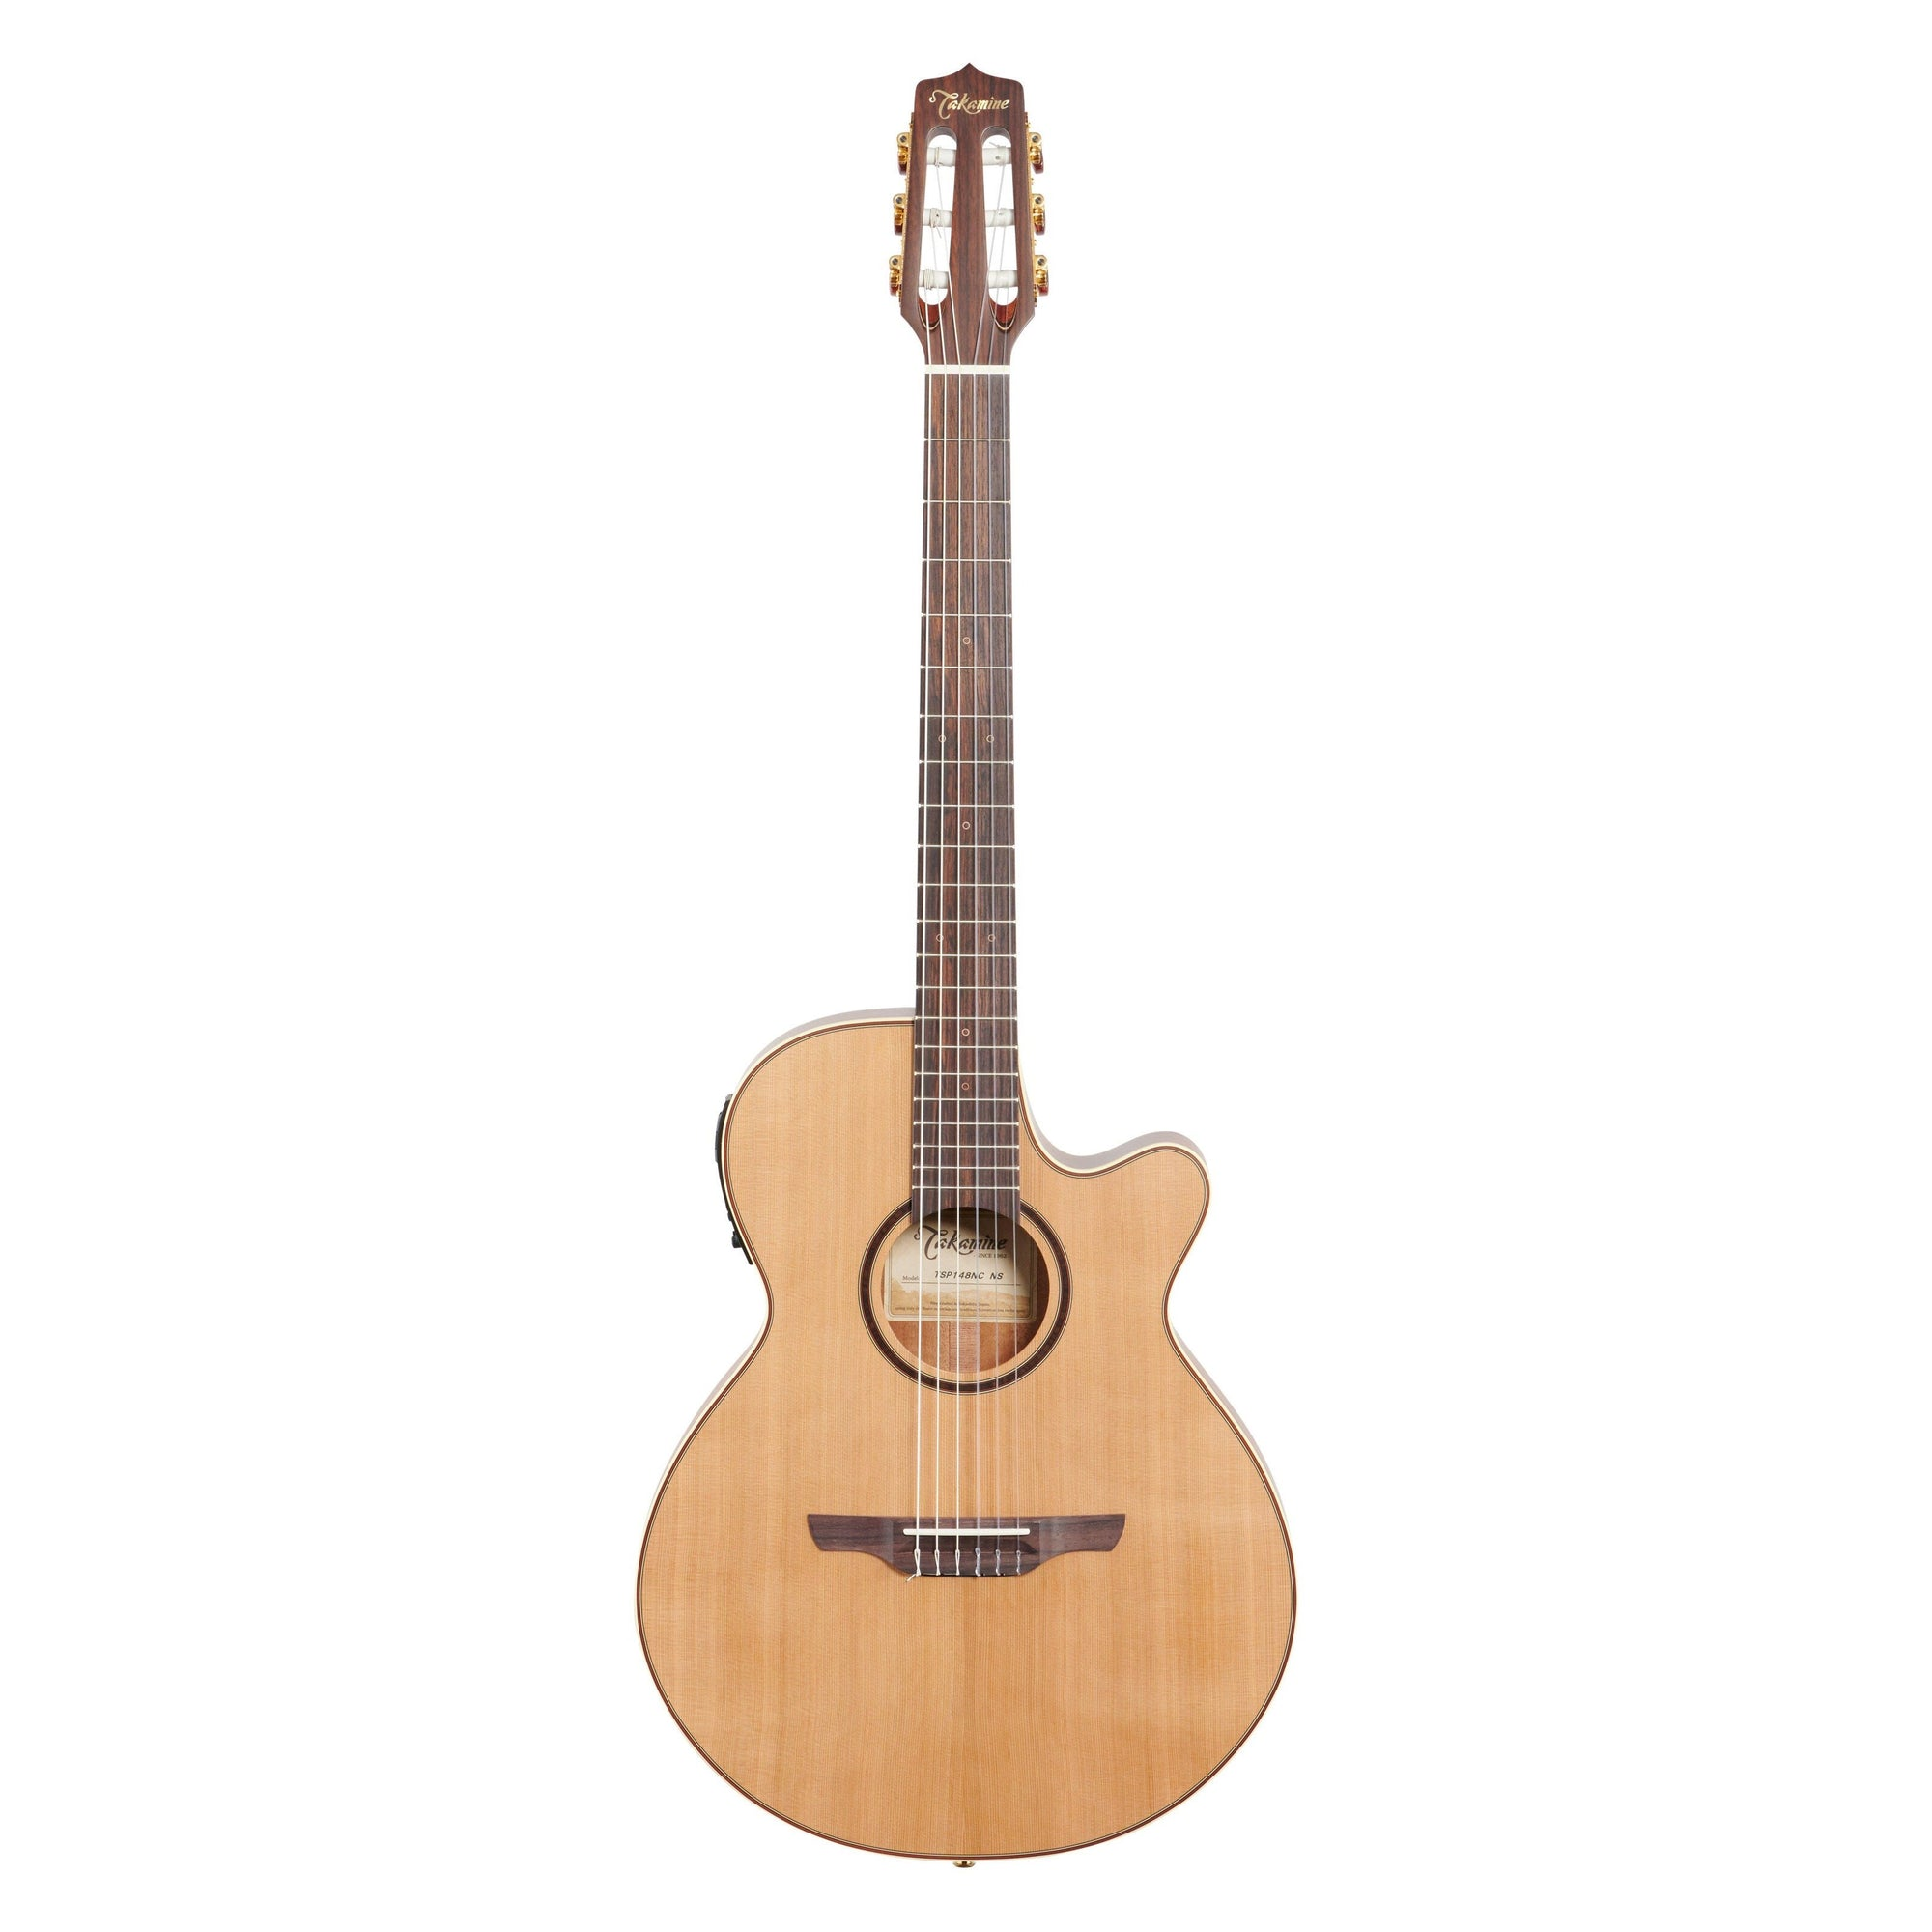 Takamine TSP148N Thinline Nylon Acoustic-Electric Guitar (with Gig Bag), Cedar Natural Satin